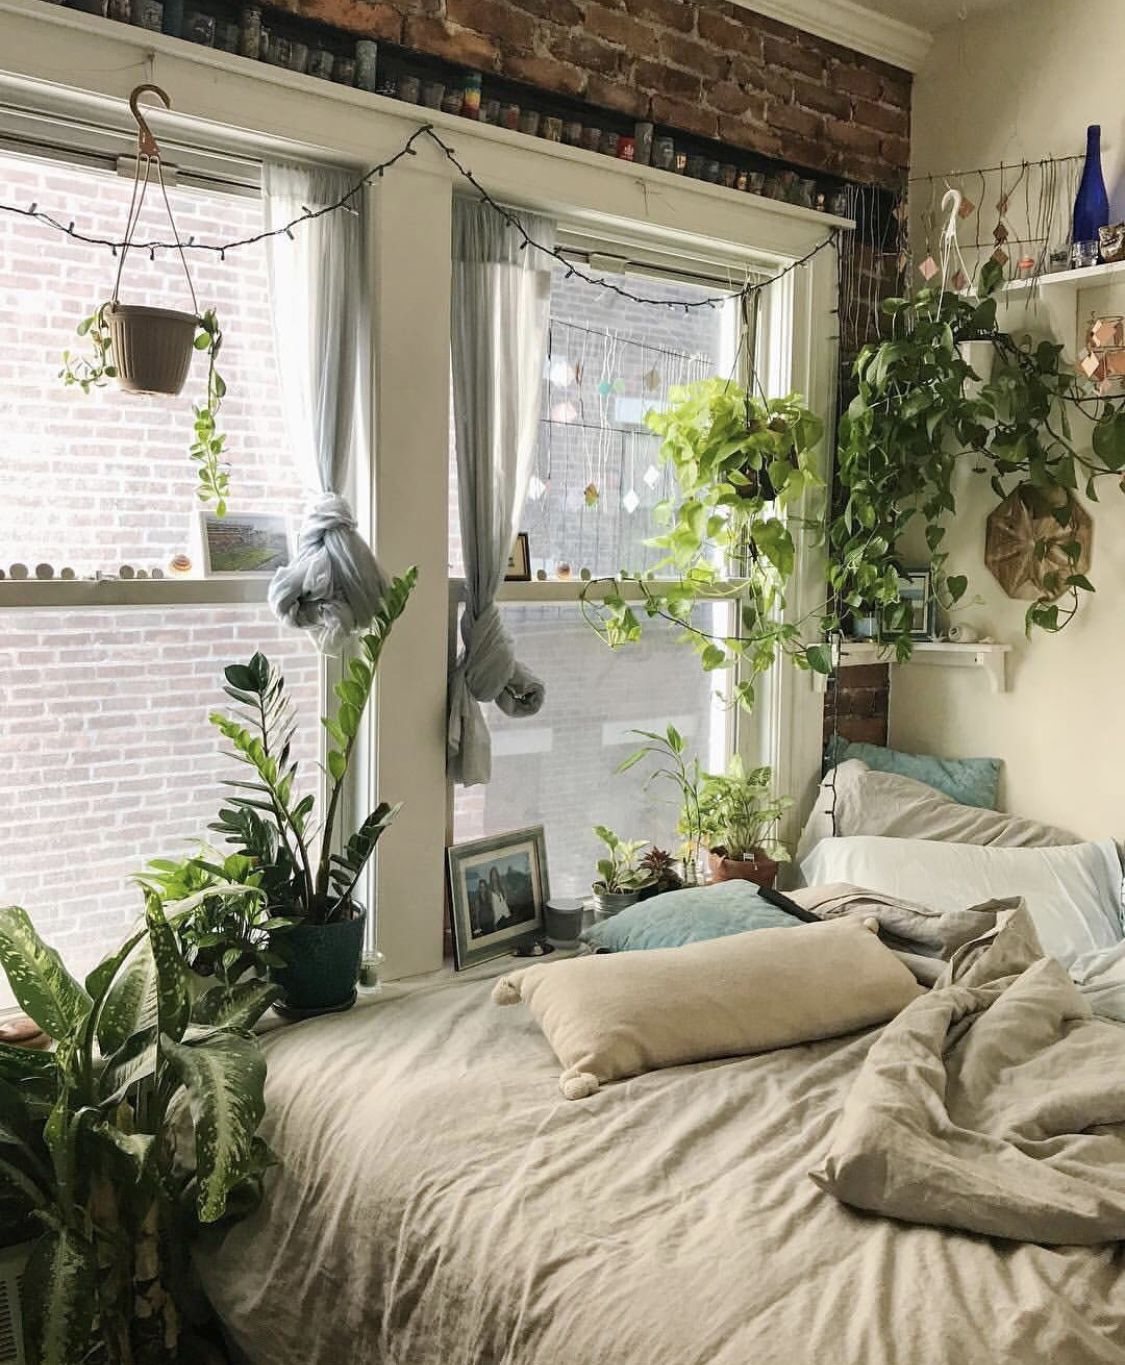 Brandoswifeey Home Apartment Decorating On A Budget